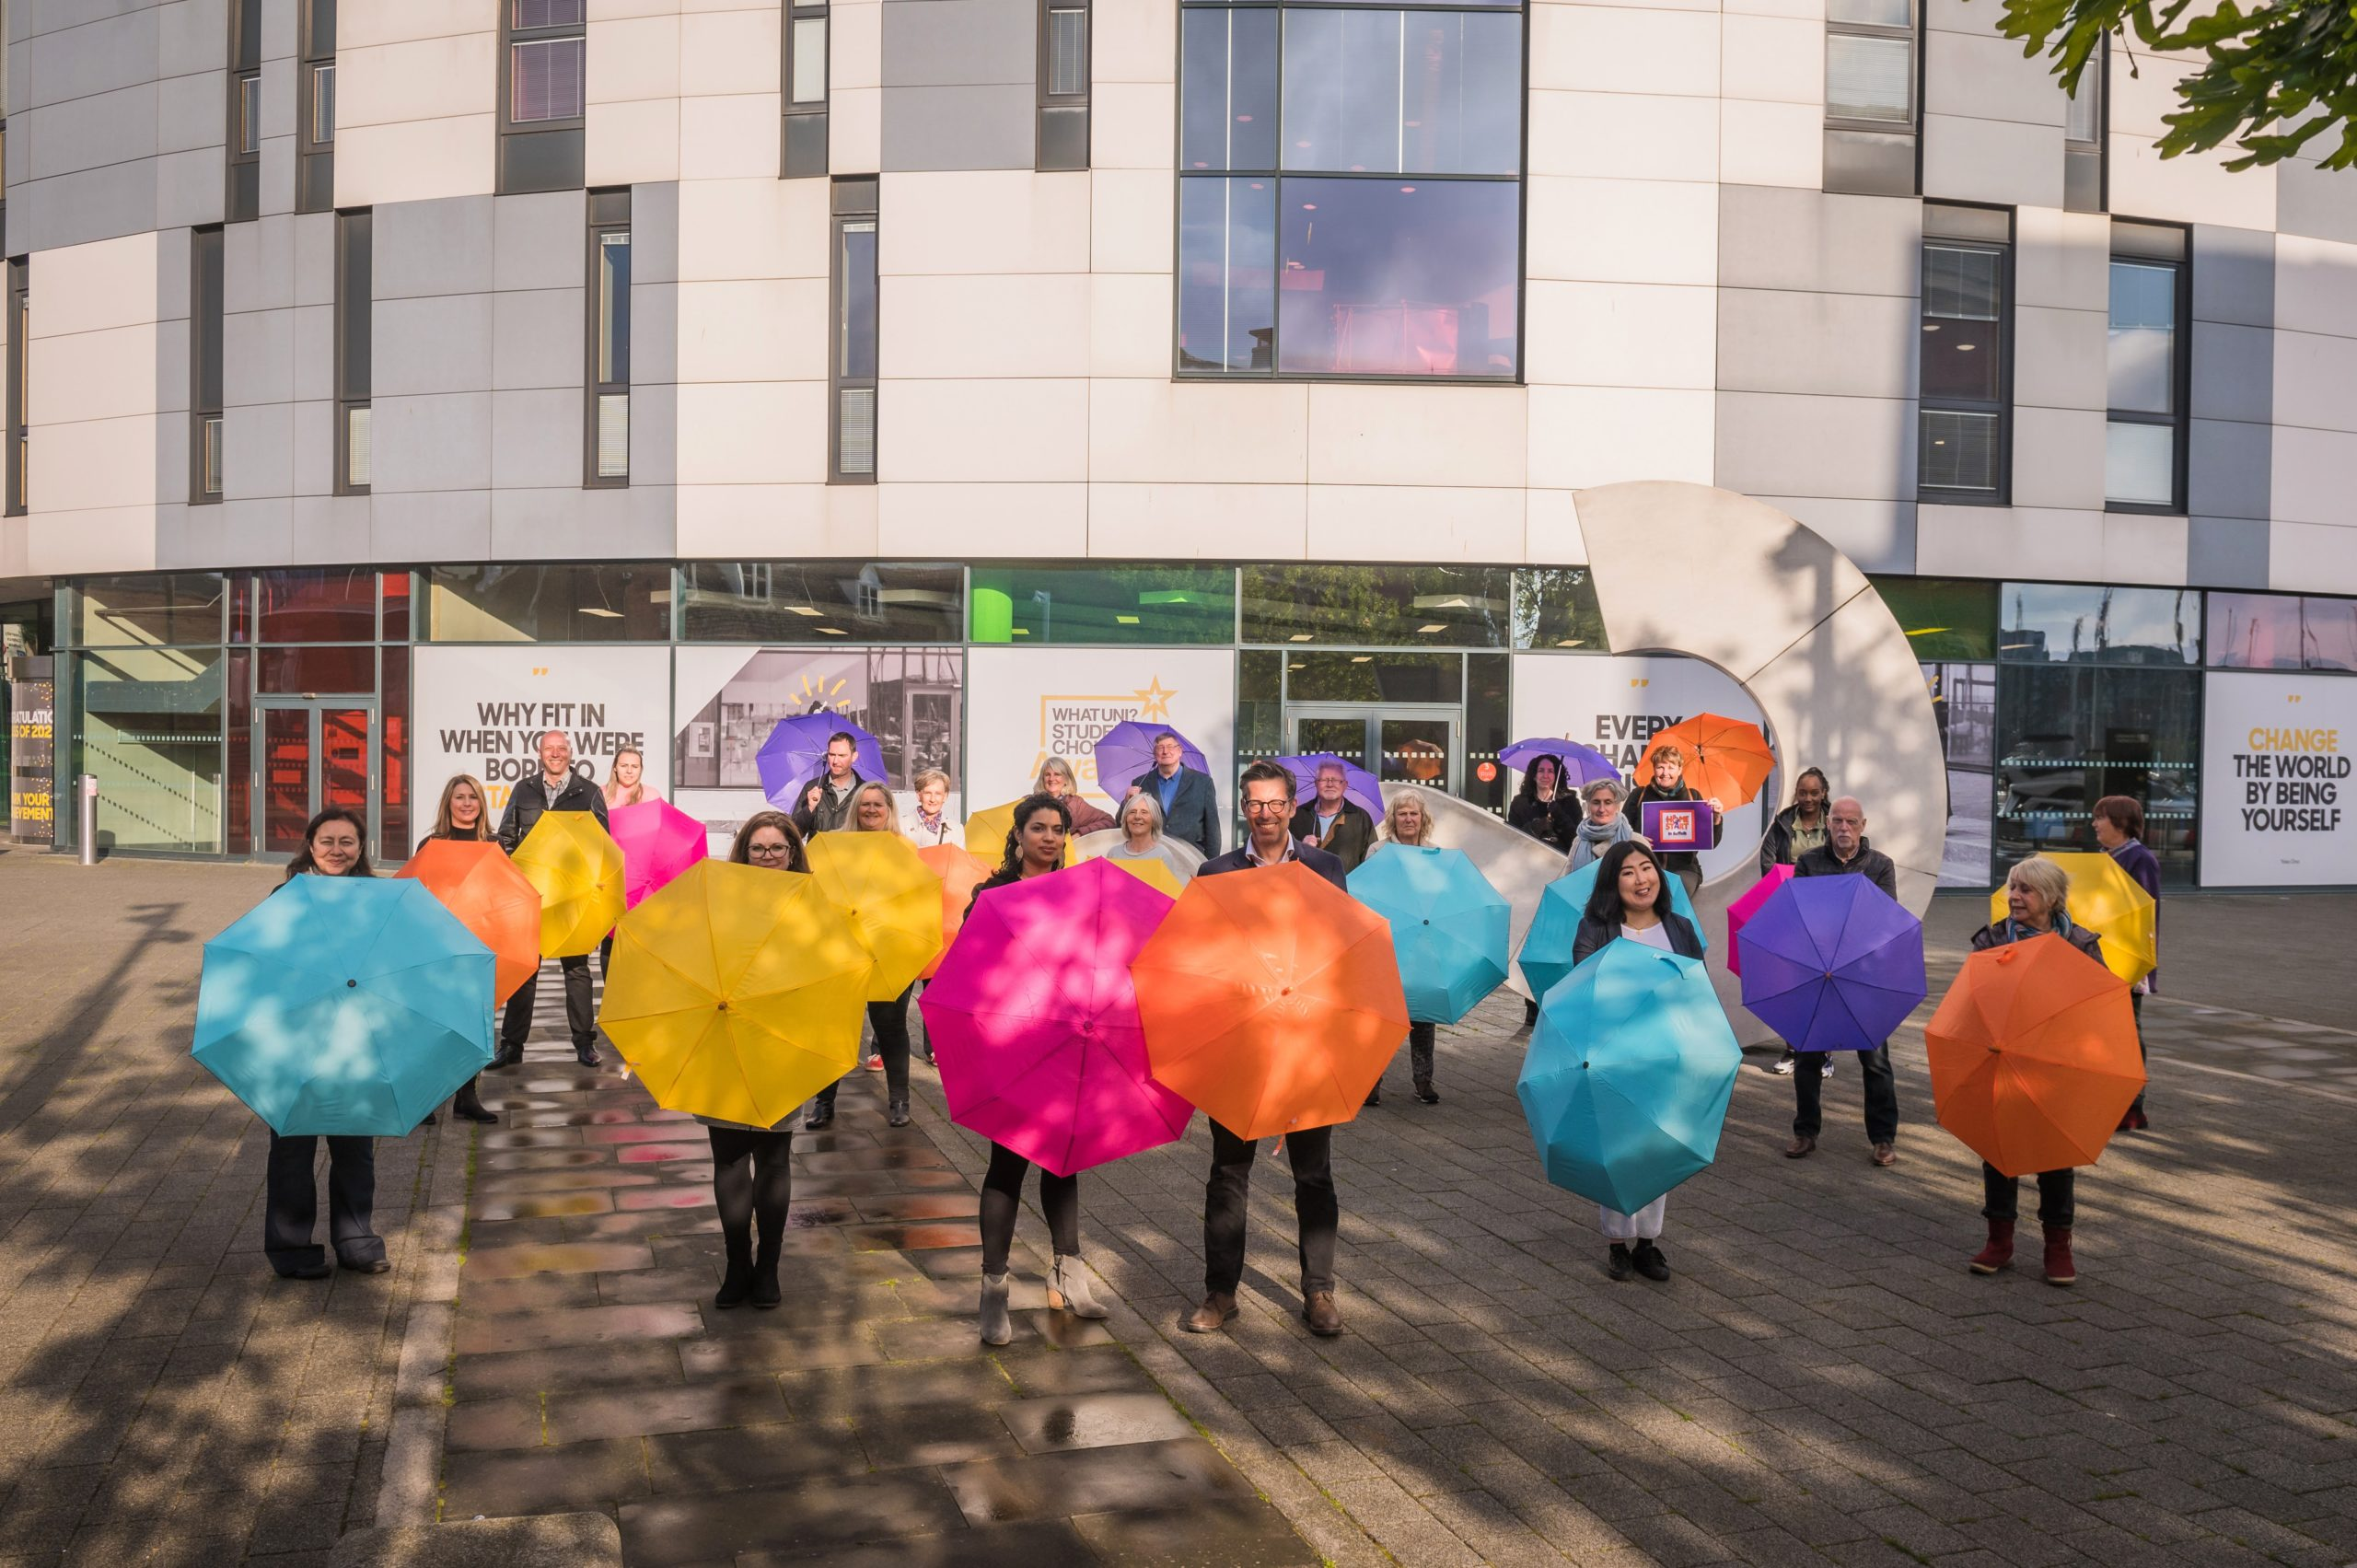 A group of people stood holding colourful umbrella's